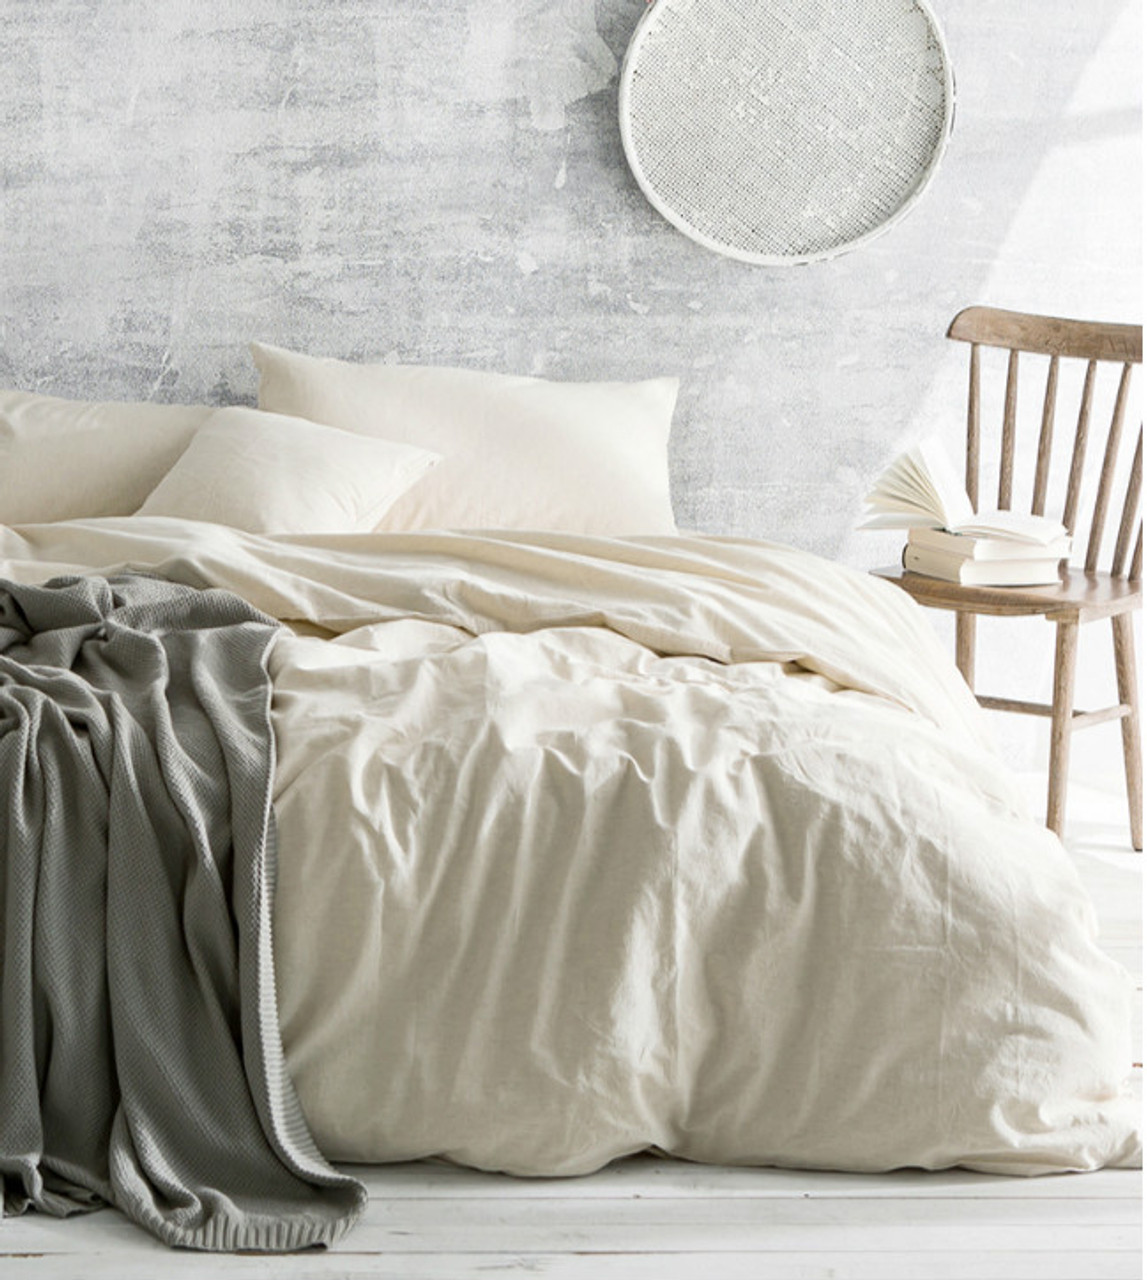 set lace duvet and bedding linen cover pin heavy stonewashed king soft with pillowcases